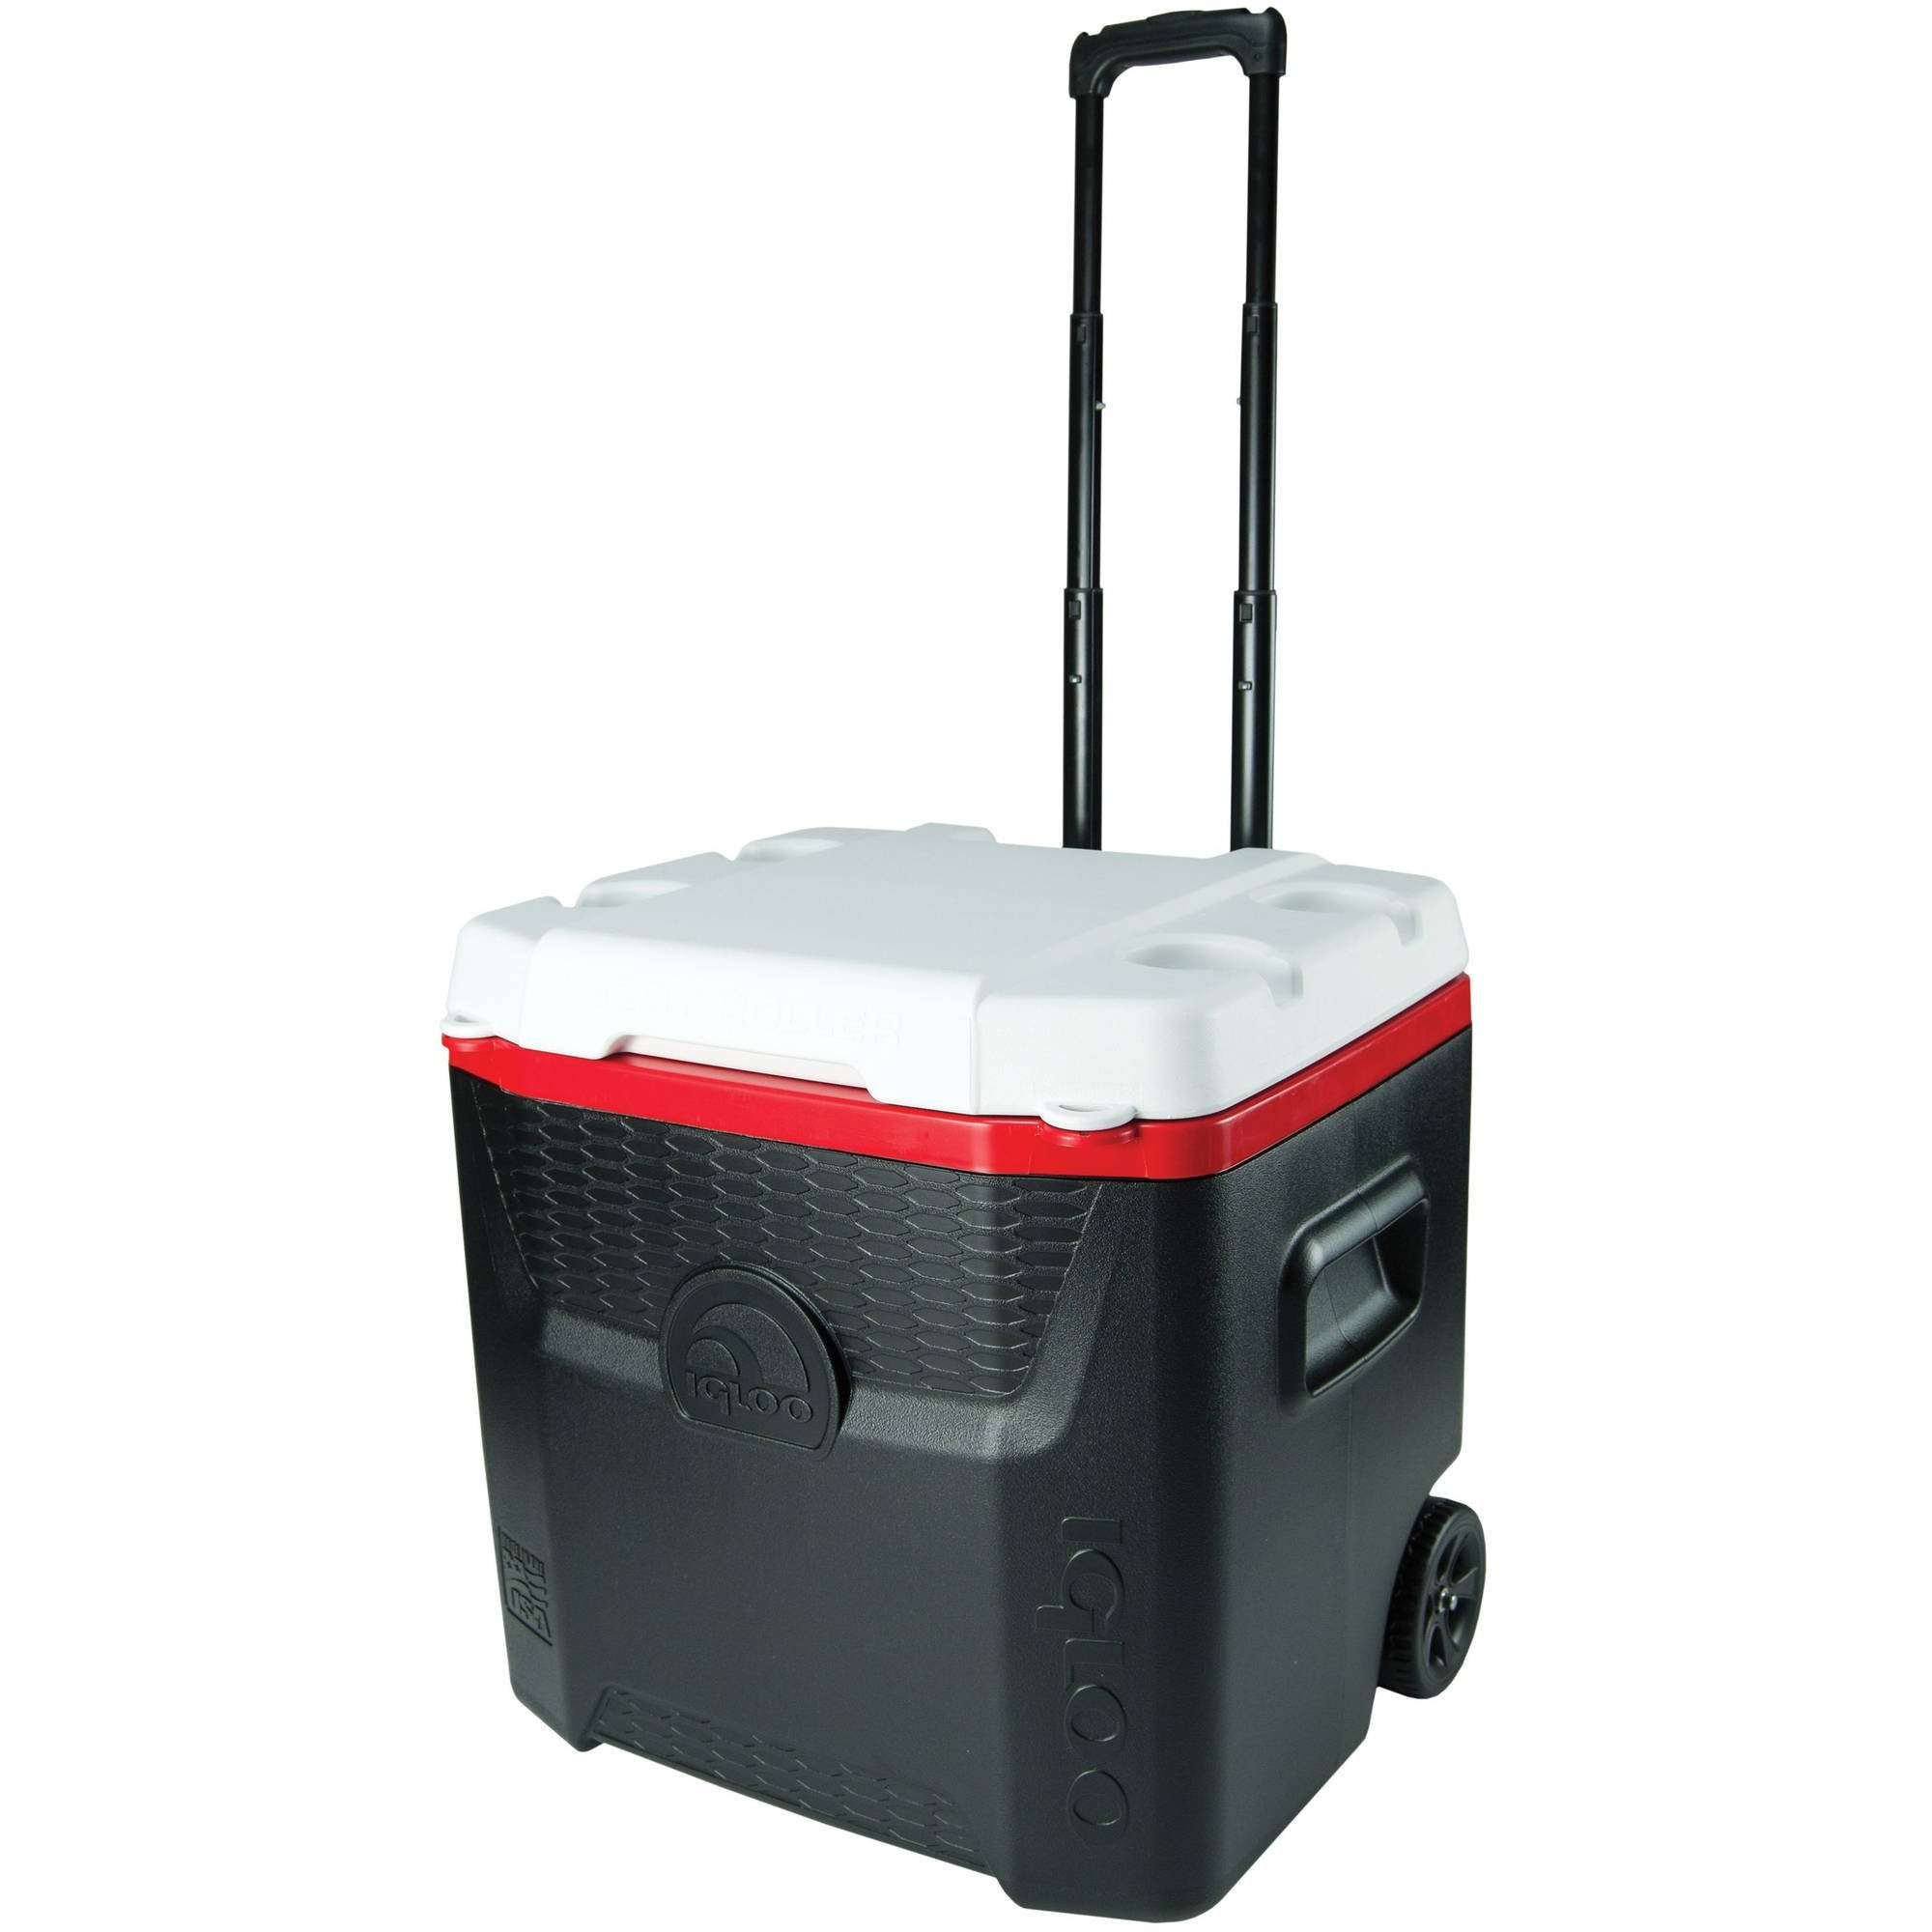 Igloo 52 Qt Quantum Wheeled Roller Locking Food and Drinks Camping Sport Cooler (Black/Red)